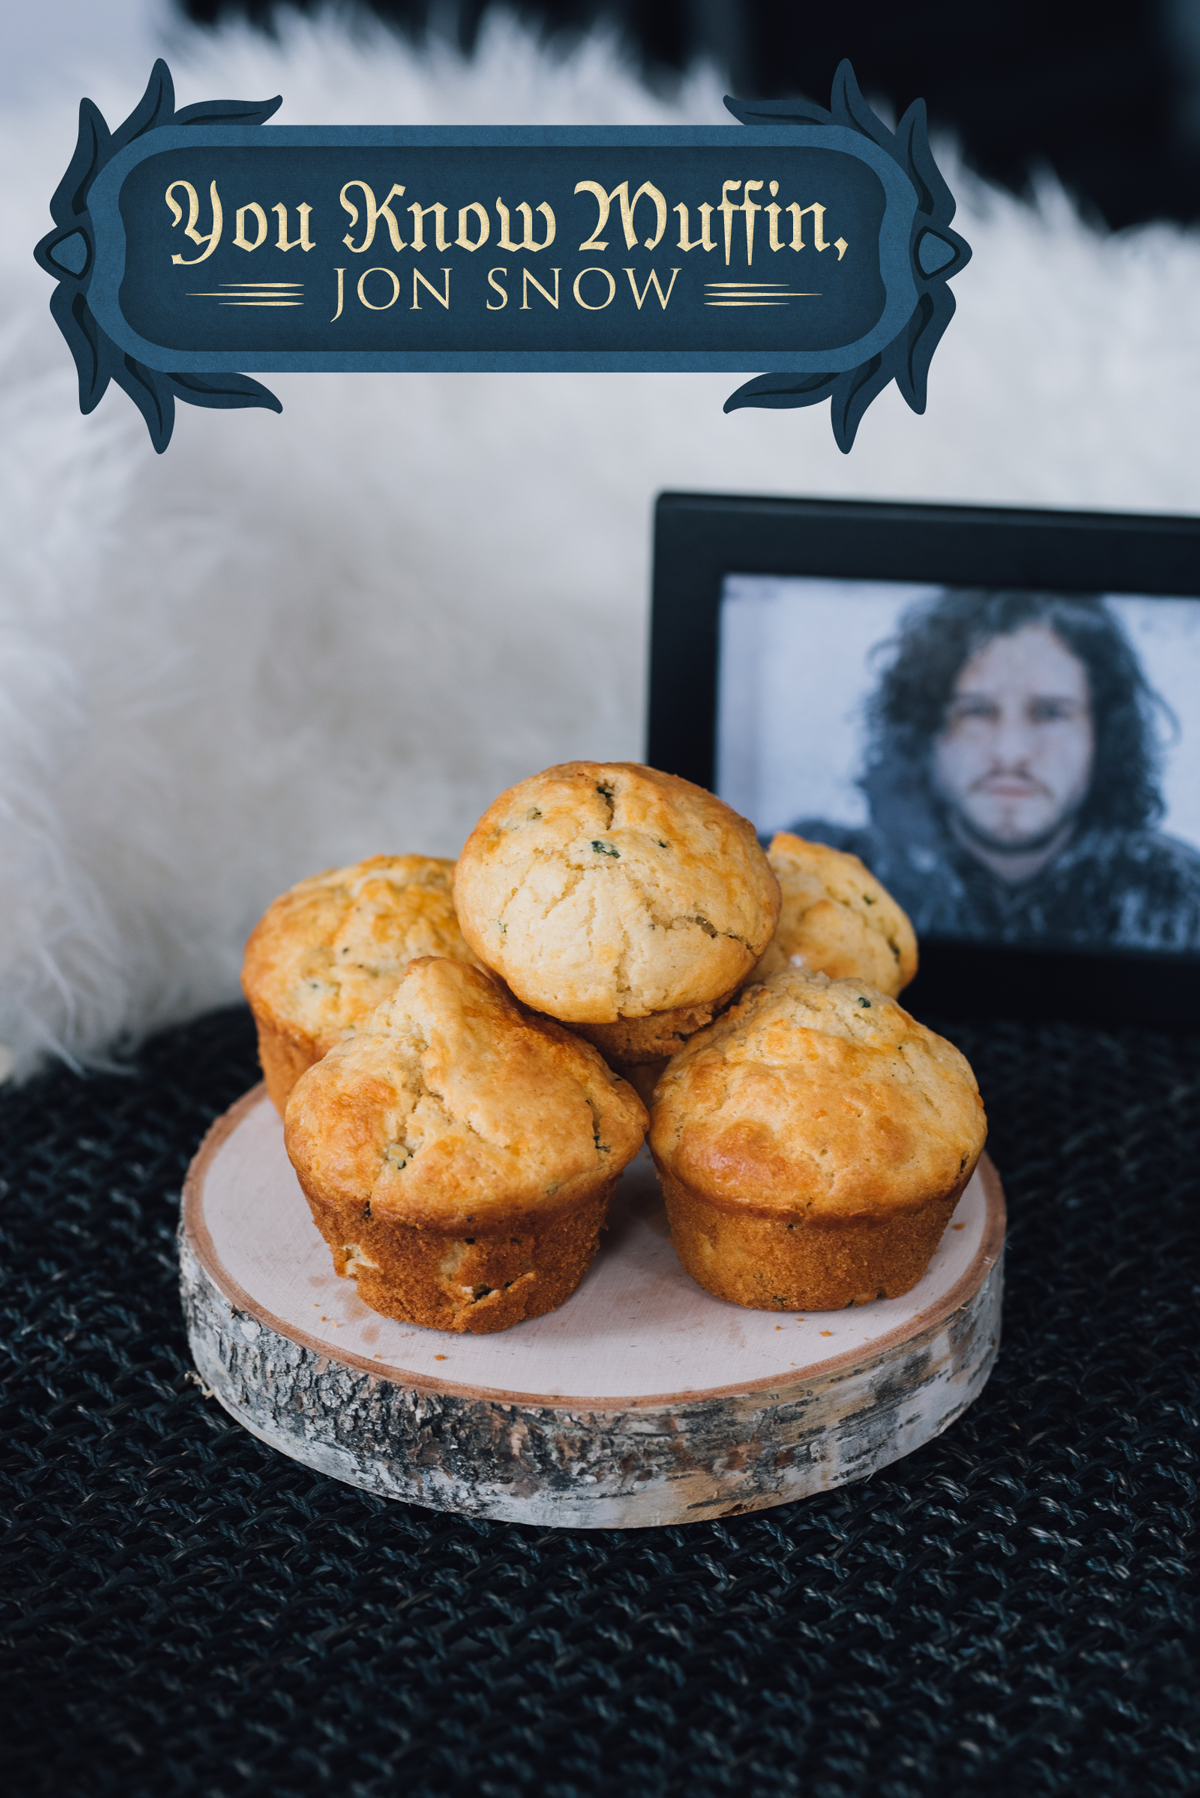 As far as I know, no one eats muffins on the show, so the idea behind this one is really just a wonderfully terrible pun. Filled with gooey cheese and garlic butter, these savory muffins would totally be worth a trip to the Wall though.